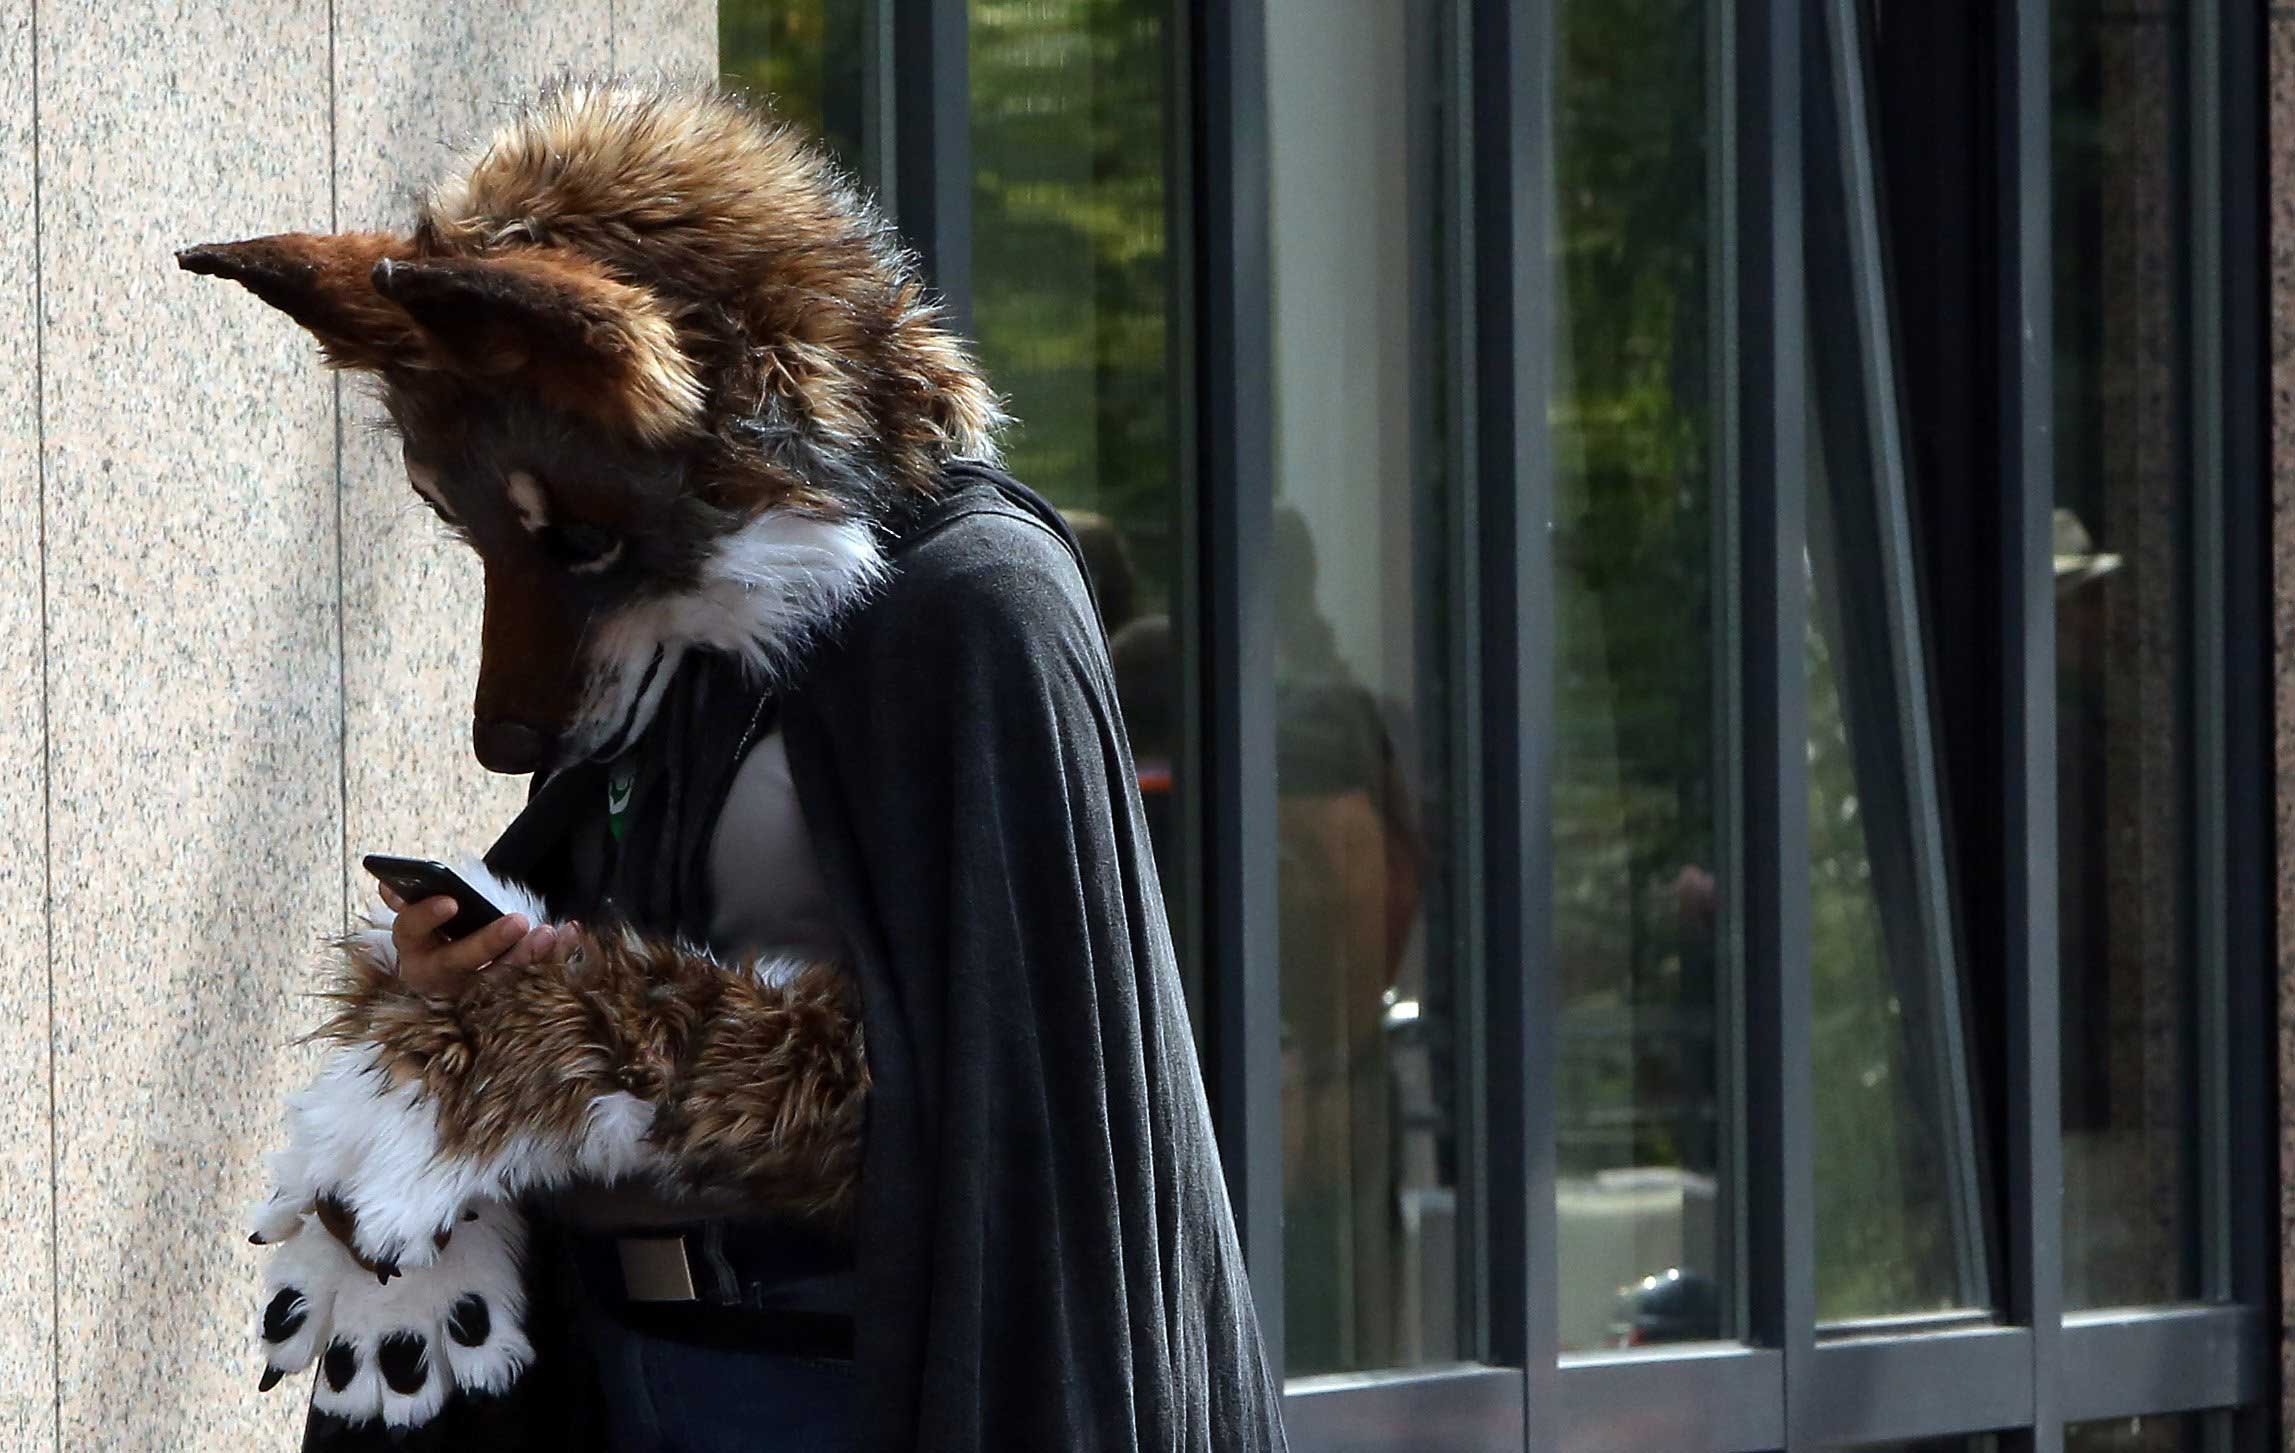 A Furry enthusiast uses a mobile phone as he attends the Eurofurence 2014 conference in Berlin, Aug. 22, 2014.